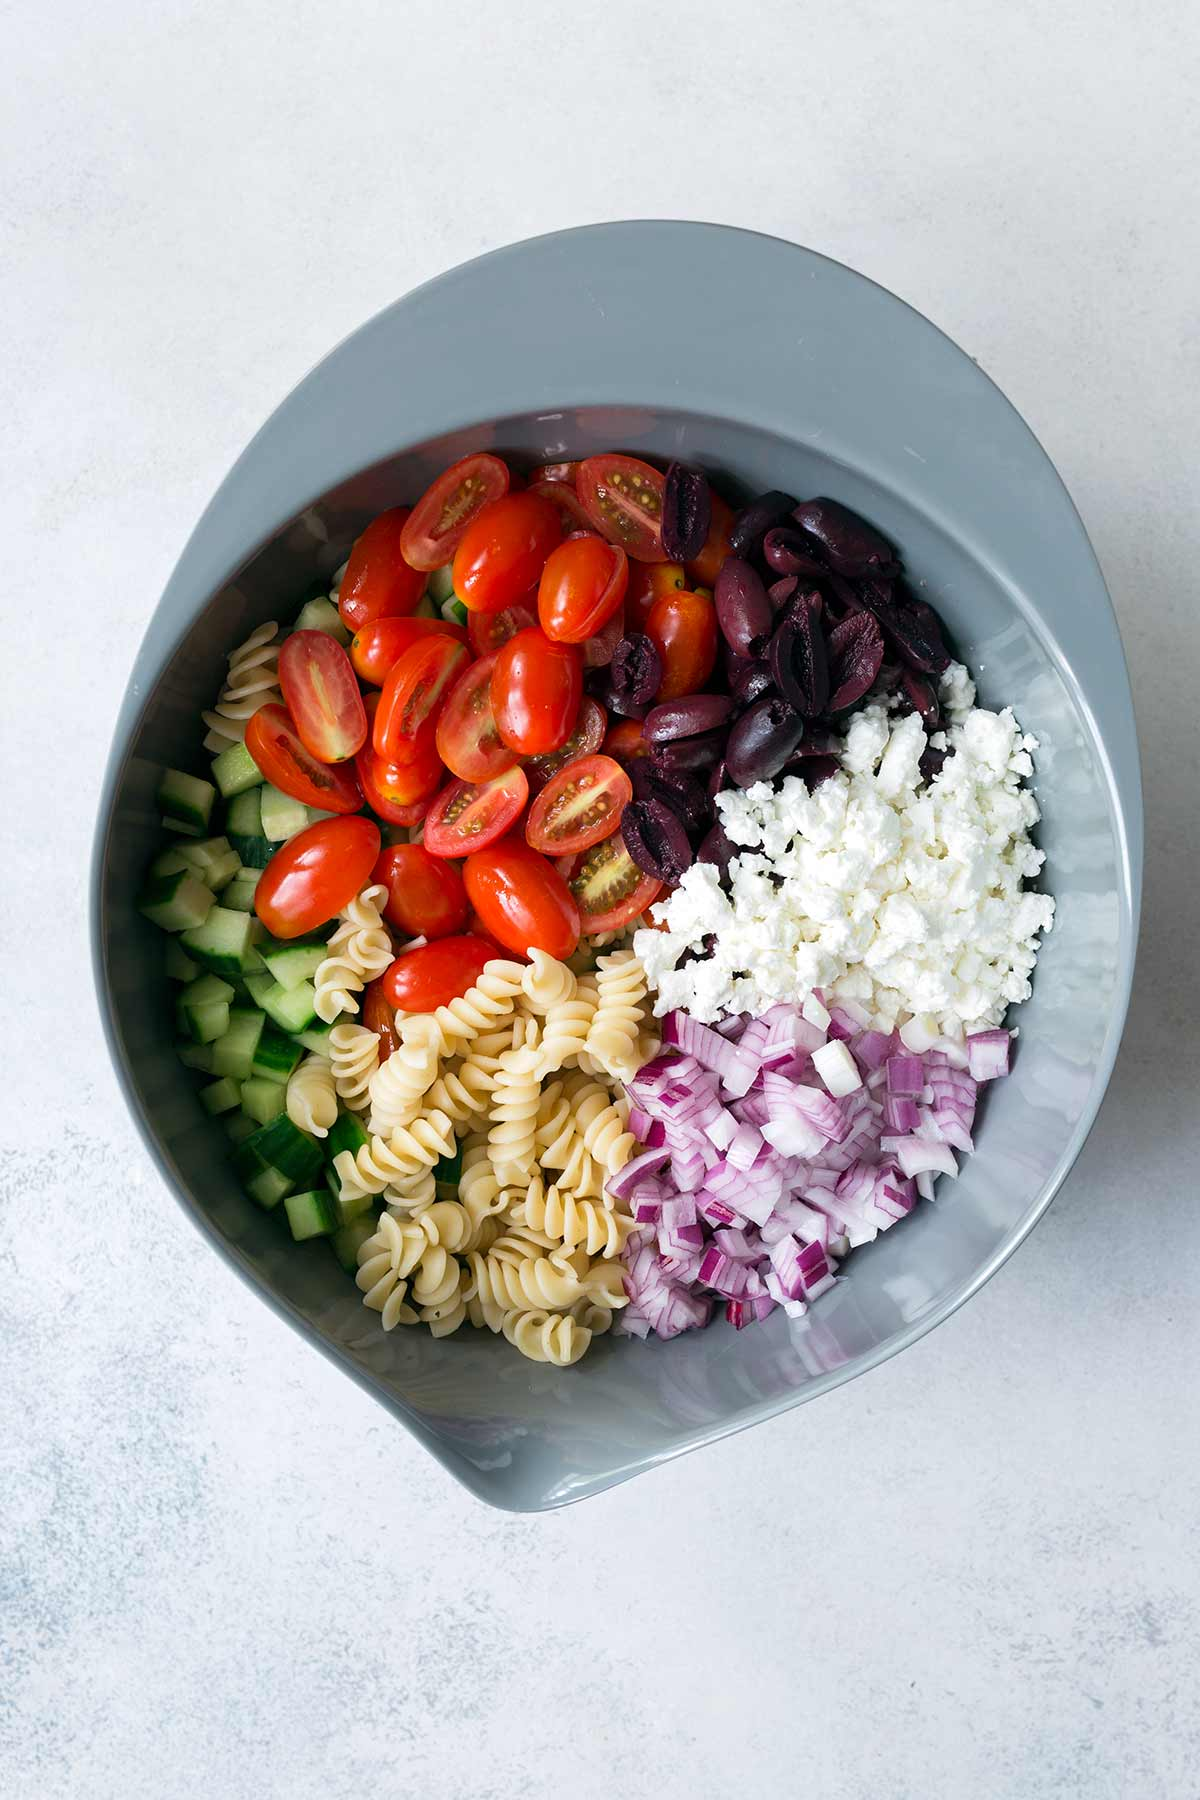 Easy pasta salad recipe ingredients in a mixing bowl.